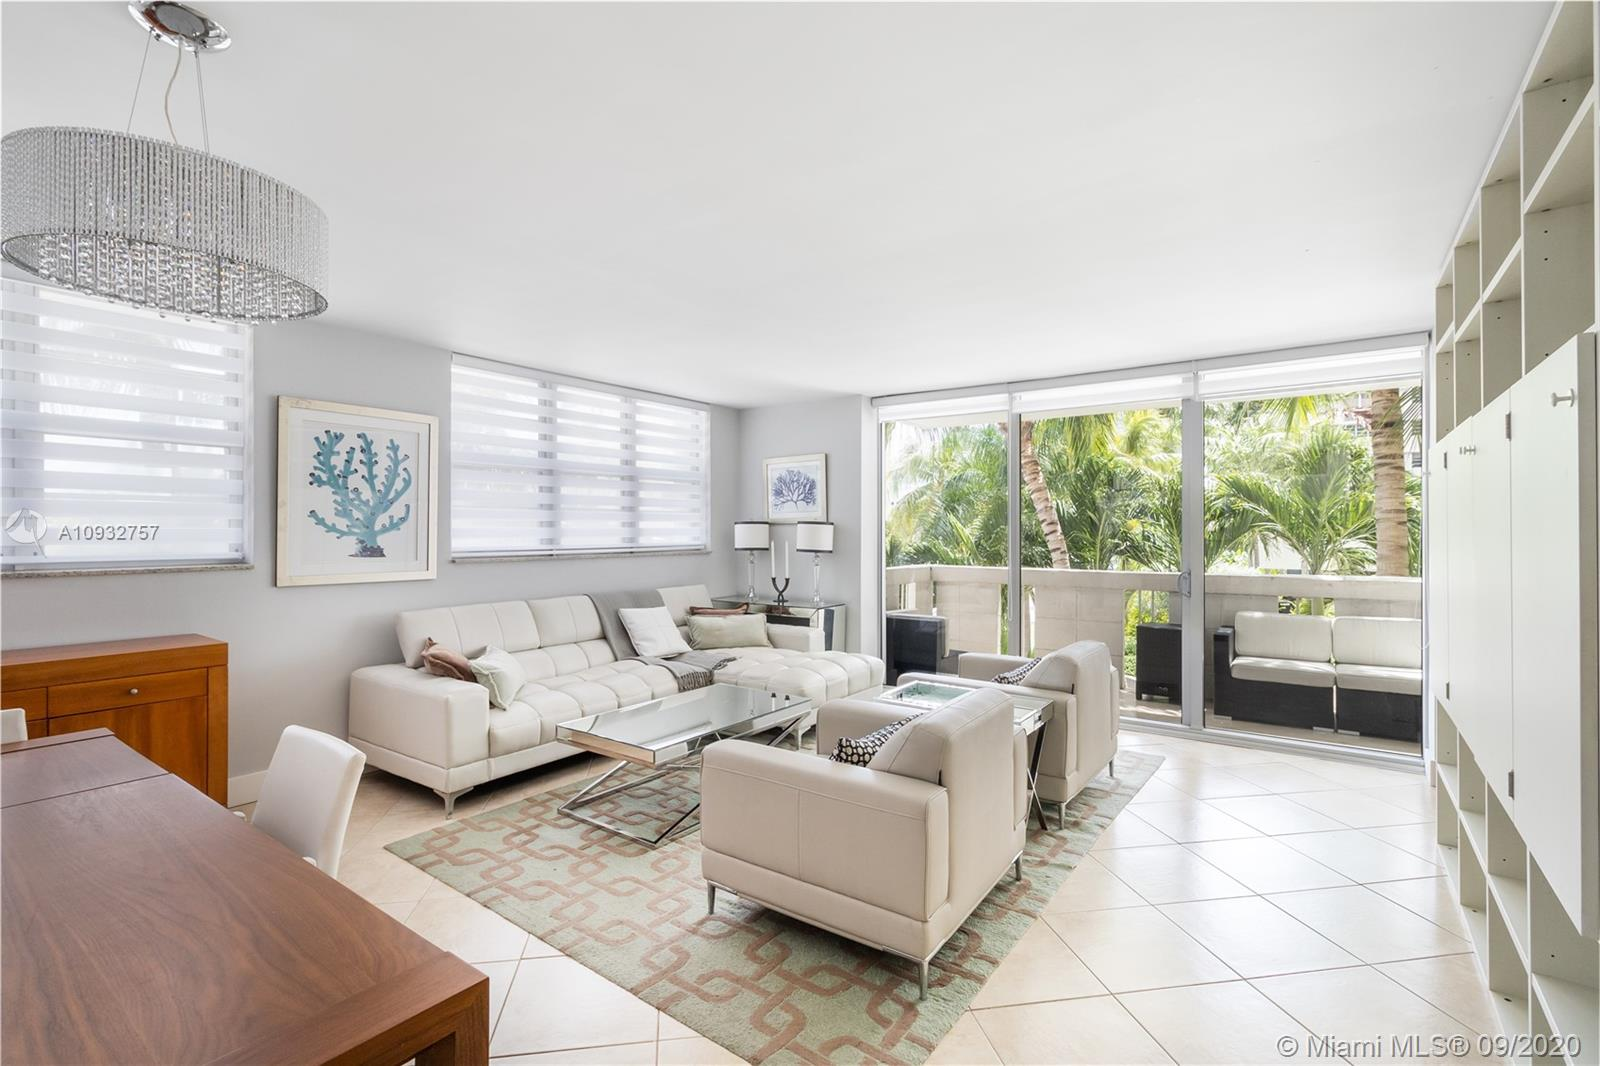 South Bay Club #335 - 800 West Ave #335, Miami Beach, FL 33139